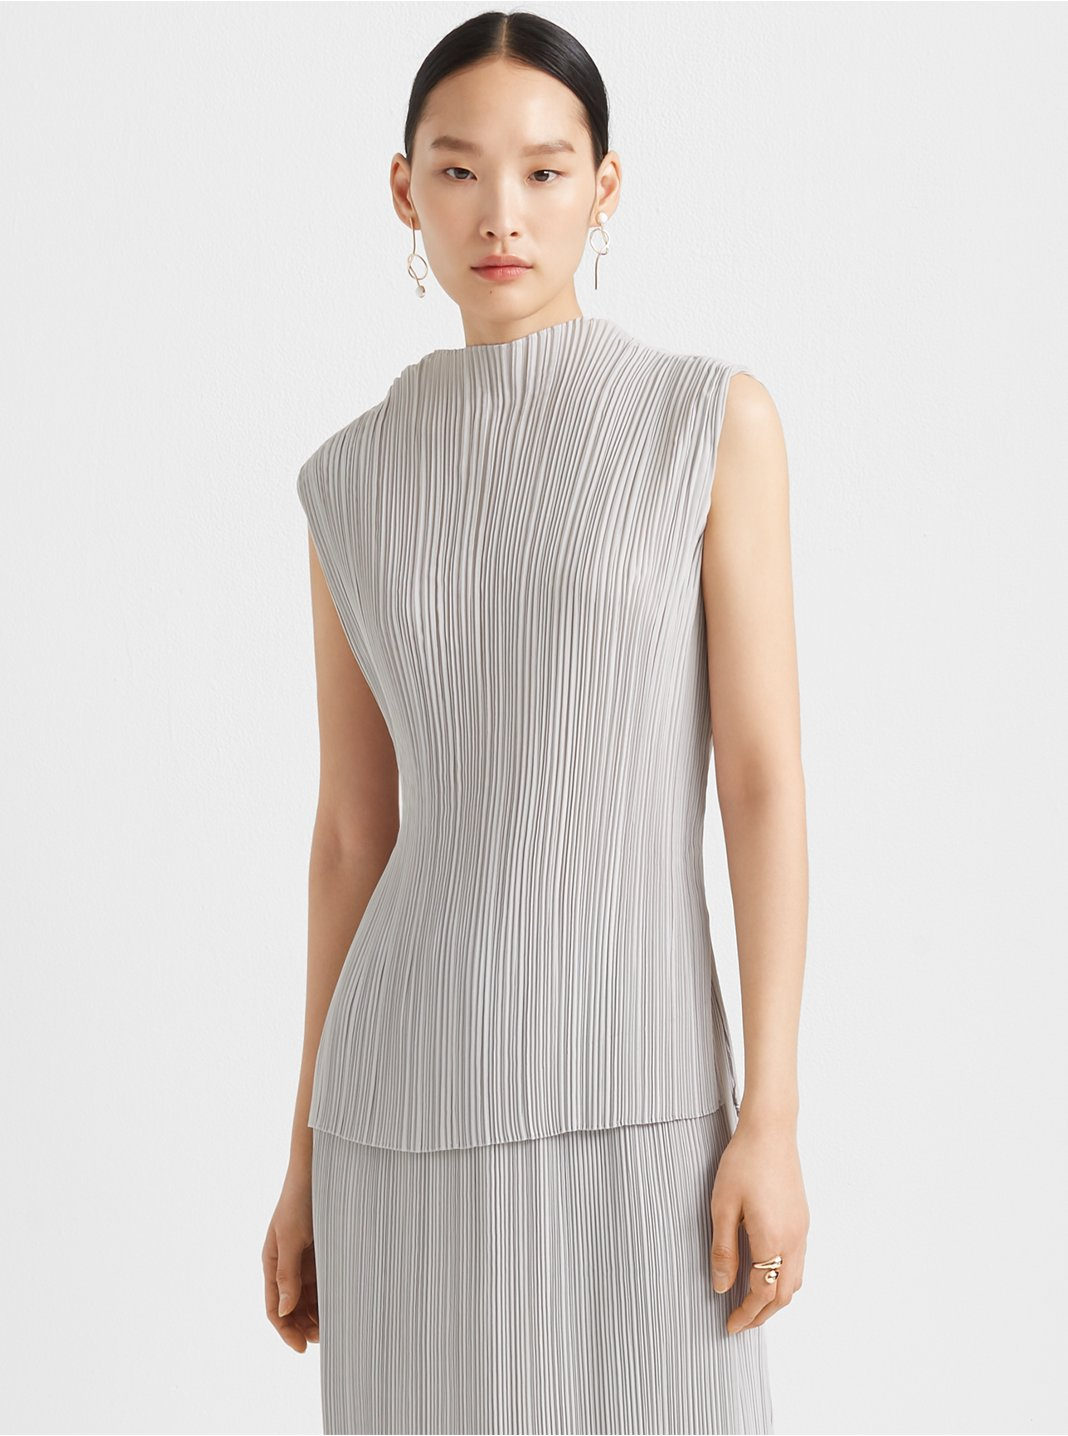 Micropleat Top